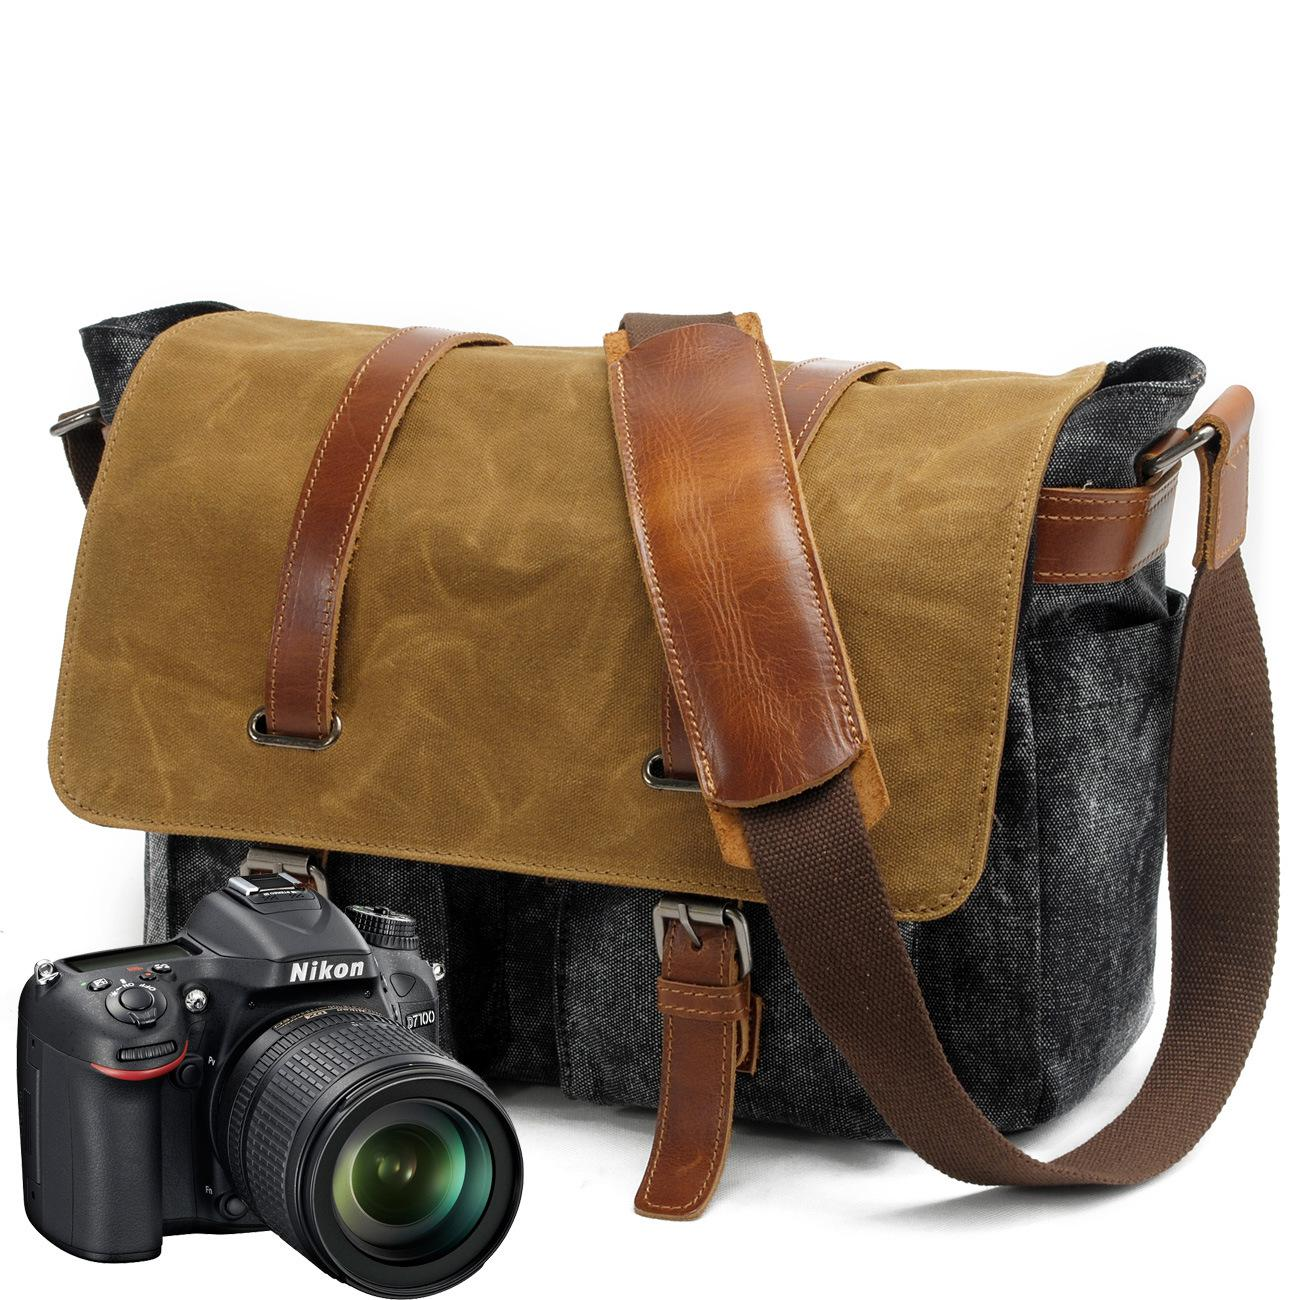 2016 Canvas Leather Crossbody Satchel  Bag Men Military Army Grey Vintage Messenger Bags Large Shoulder Bag Casual Travel Bags new arrival canvas leather crossbody bag men military army vintage messenger bags postman large shoulder bag office laptop case